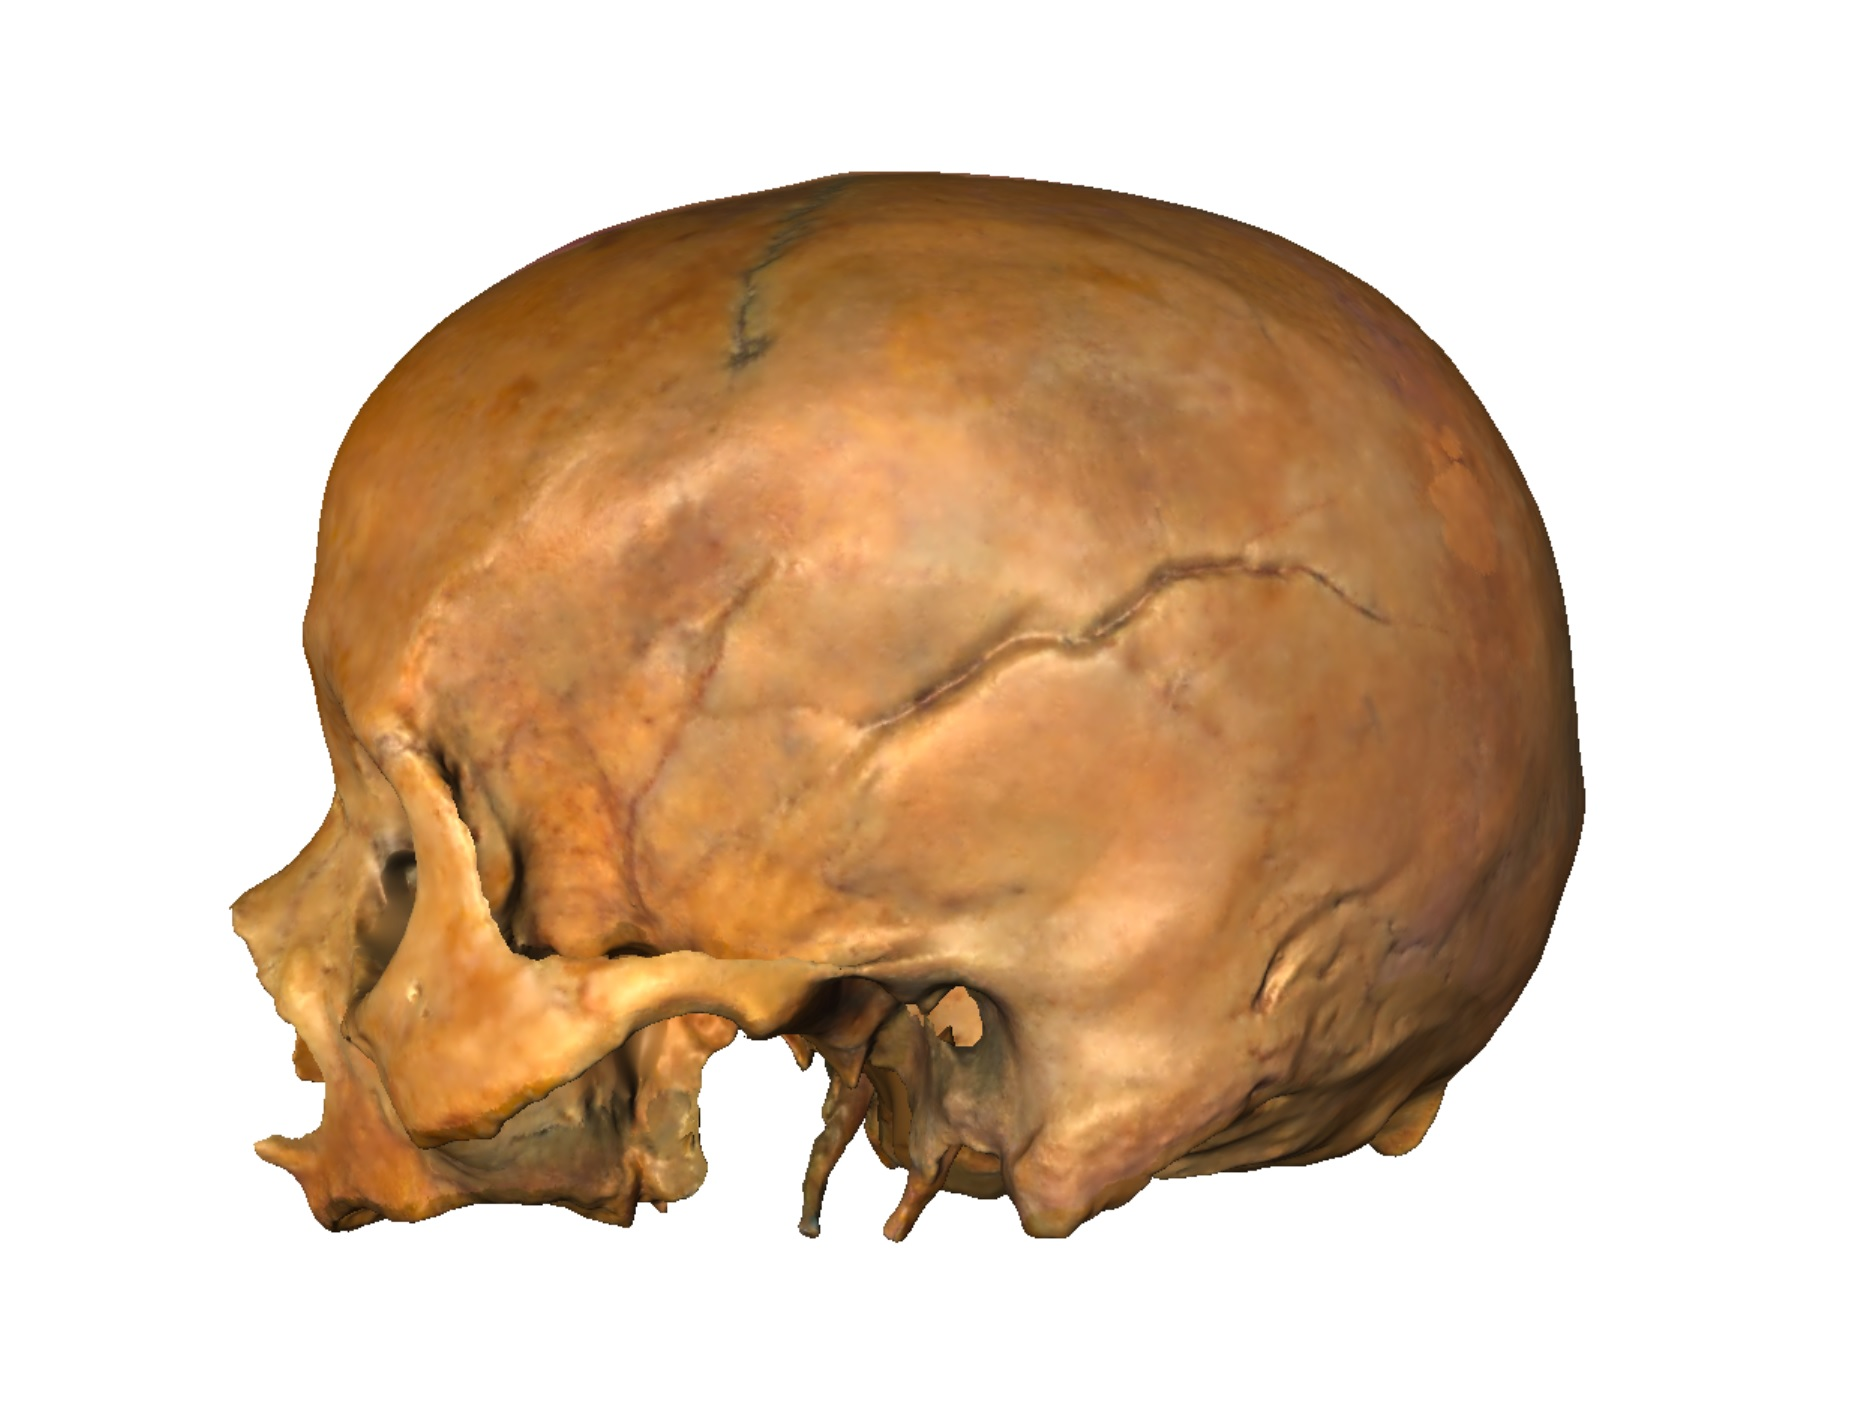 3D laser scan of an adult human cranium in left lateral view.